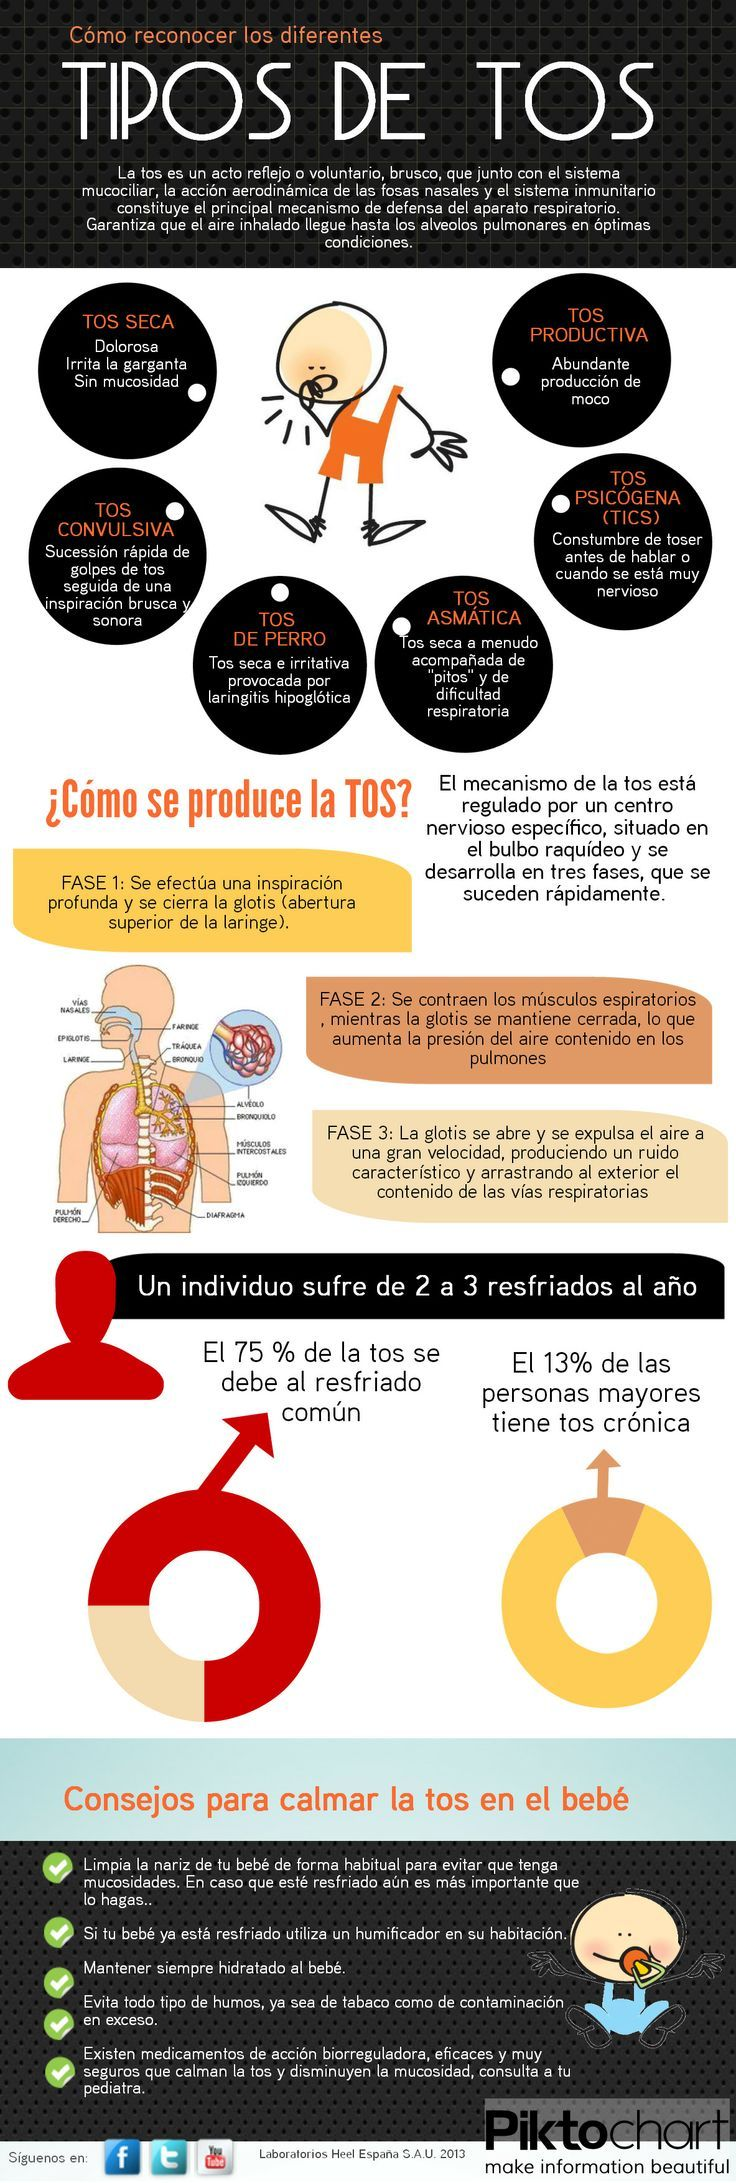 tipos de tos - Types of coughs - Medical infographic Unit